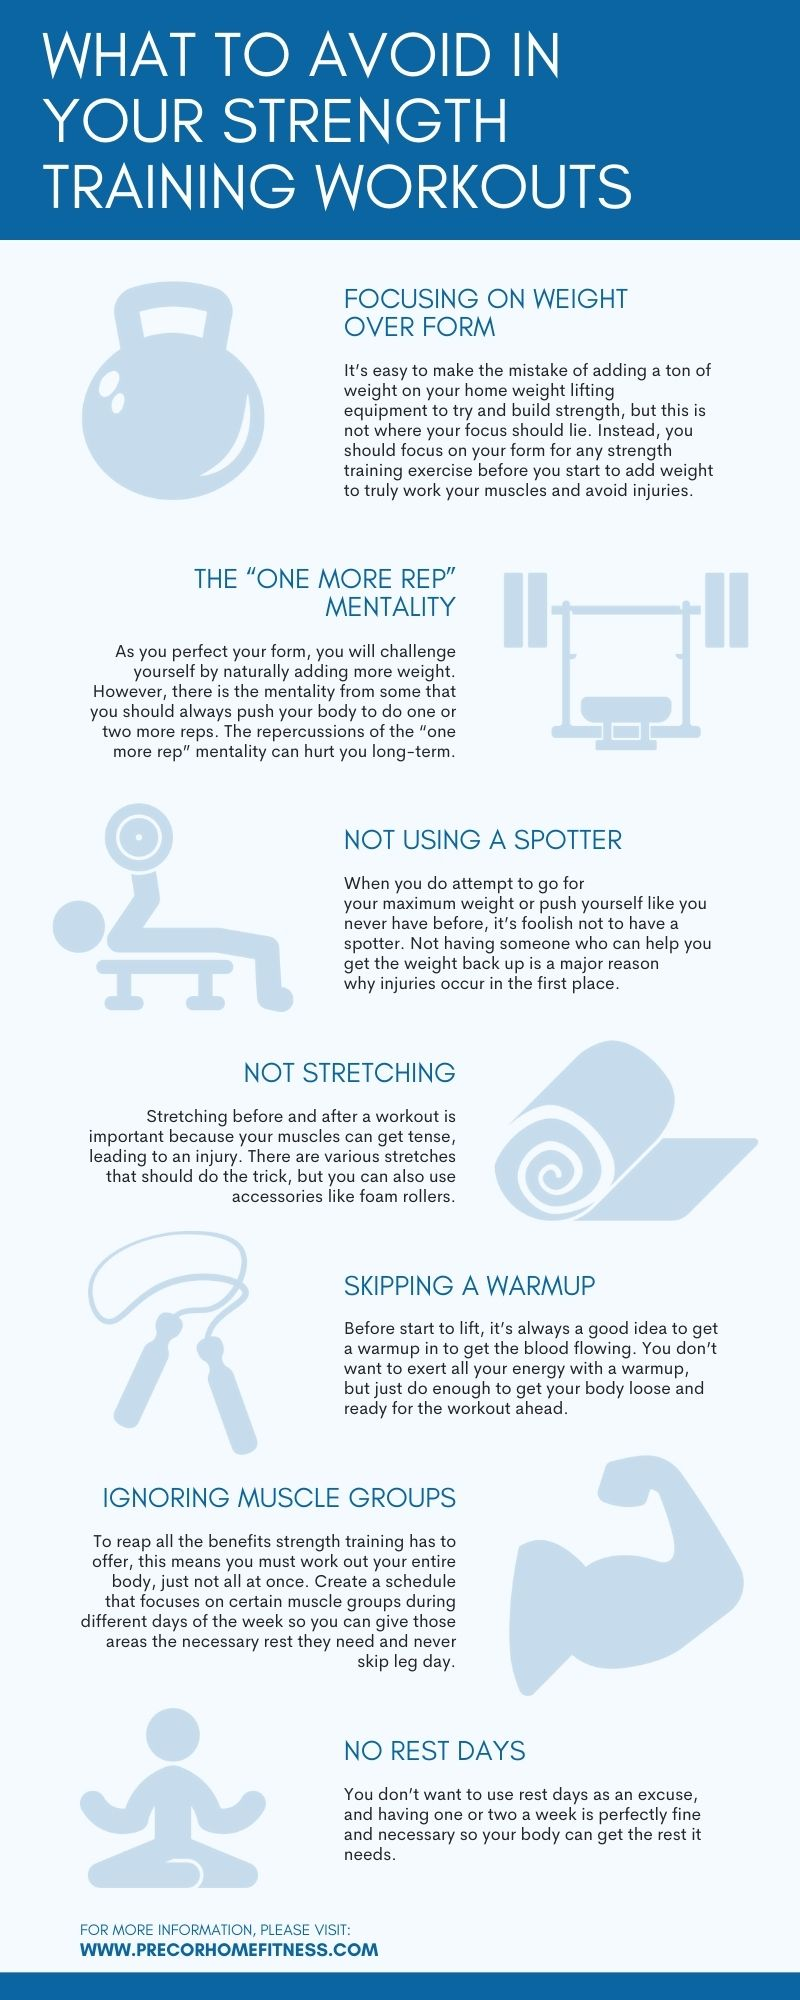 Strength Training Workout Tips Infographic